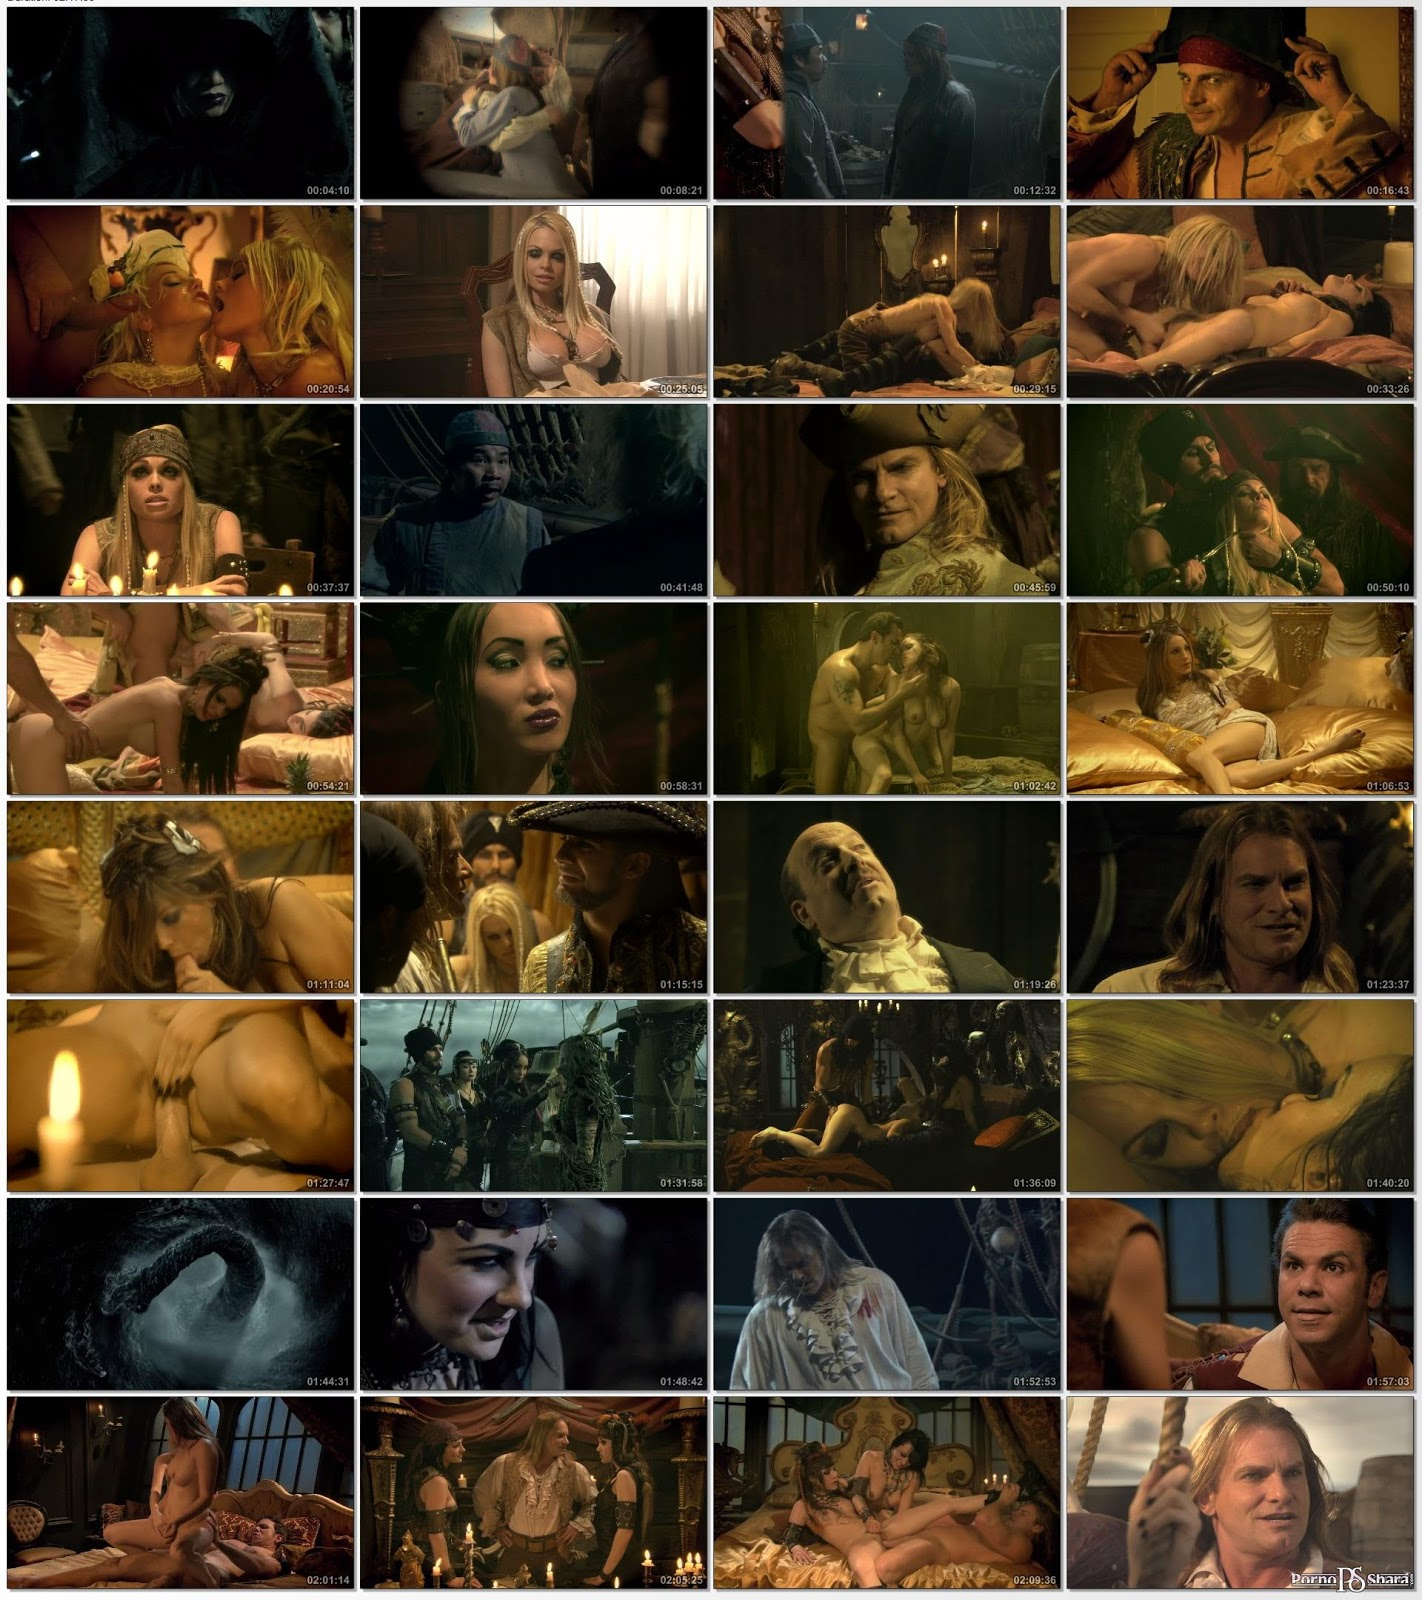 Pirates xxx movie sex scenes in 3gp porn galleries